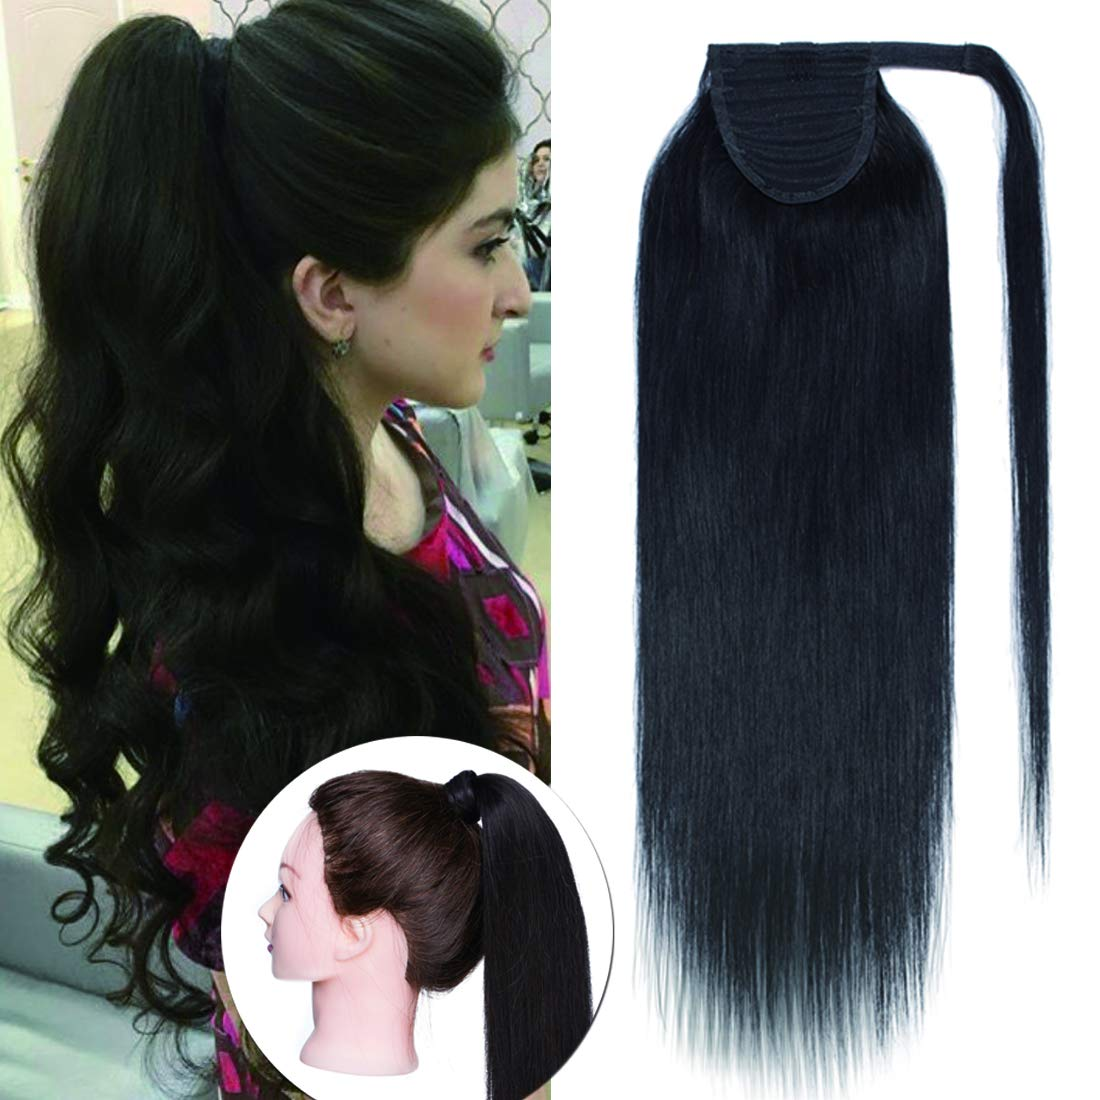 SEGO Wrap Around Ponytail Hair Extensions Human Hair Long Straight 100% Real Remy Hair Pony Tails Hair Extensions For Women #1B Natual Black 20 inches 95g by SEGO